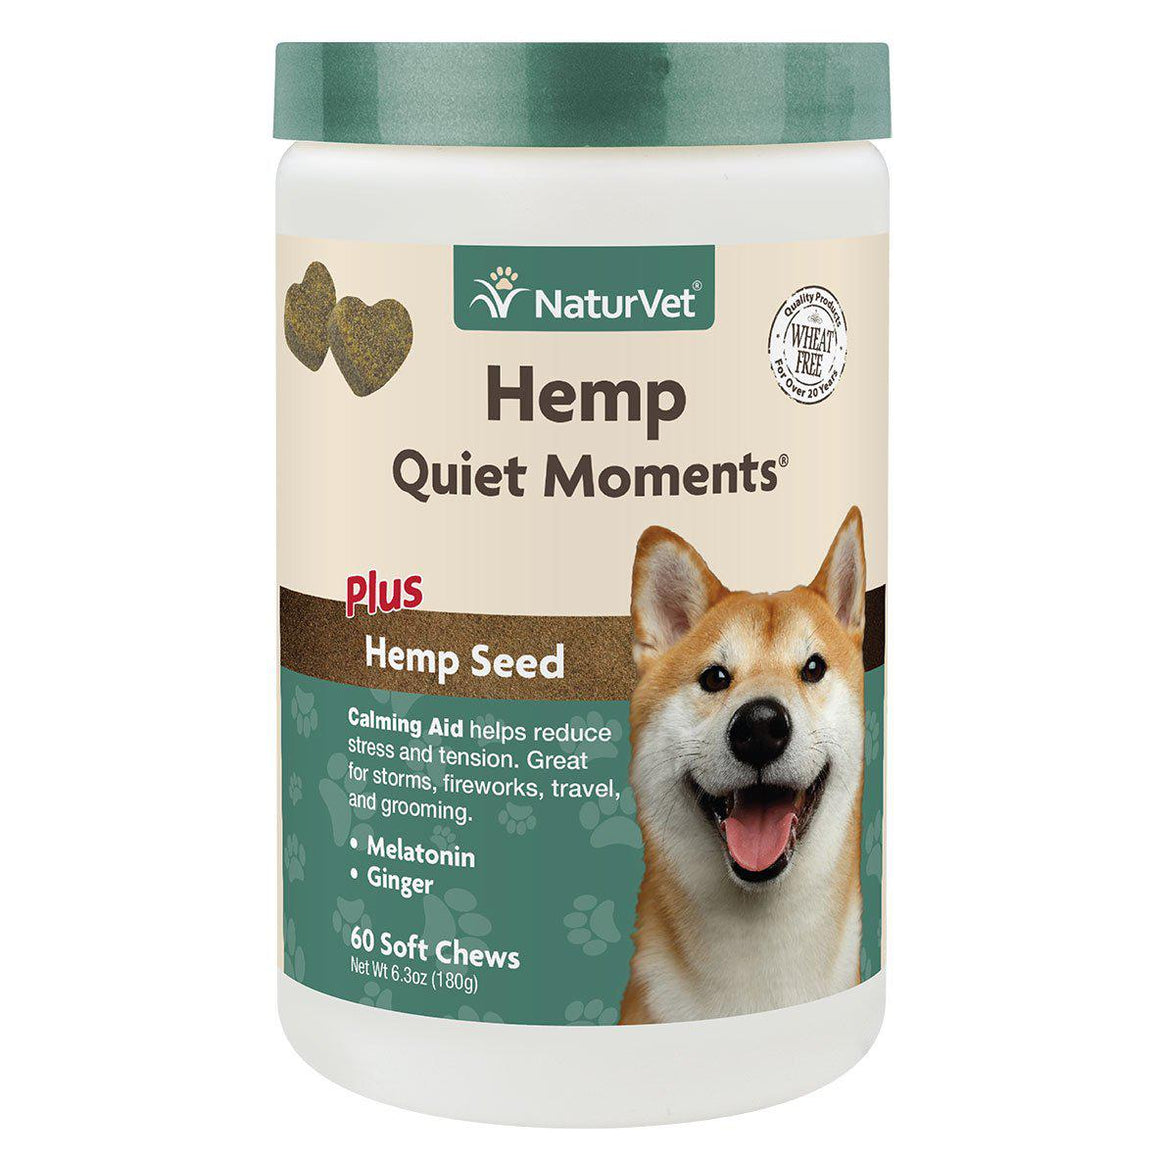 NaturVet Hemp Quiet Moments Calming Aid Soft Chew Dog Supply-Le Pup Pet Supplies and Grooming